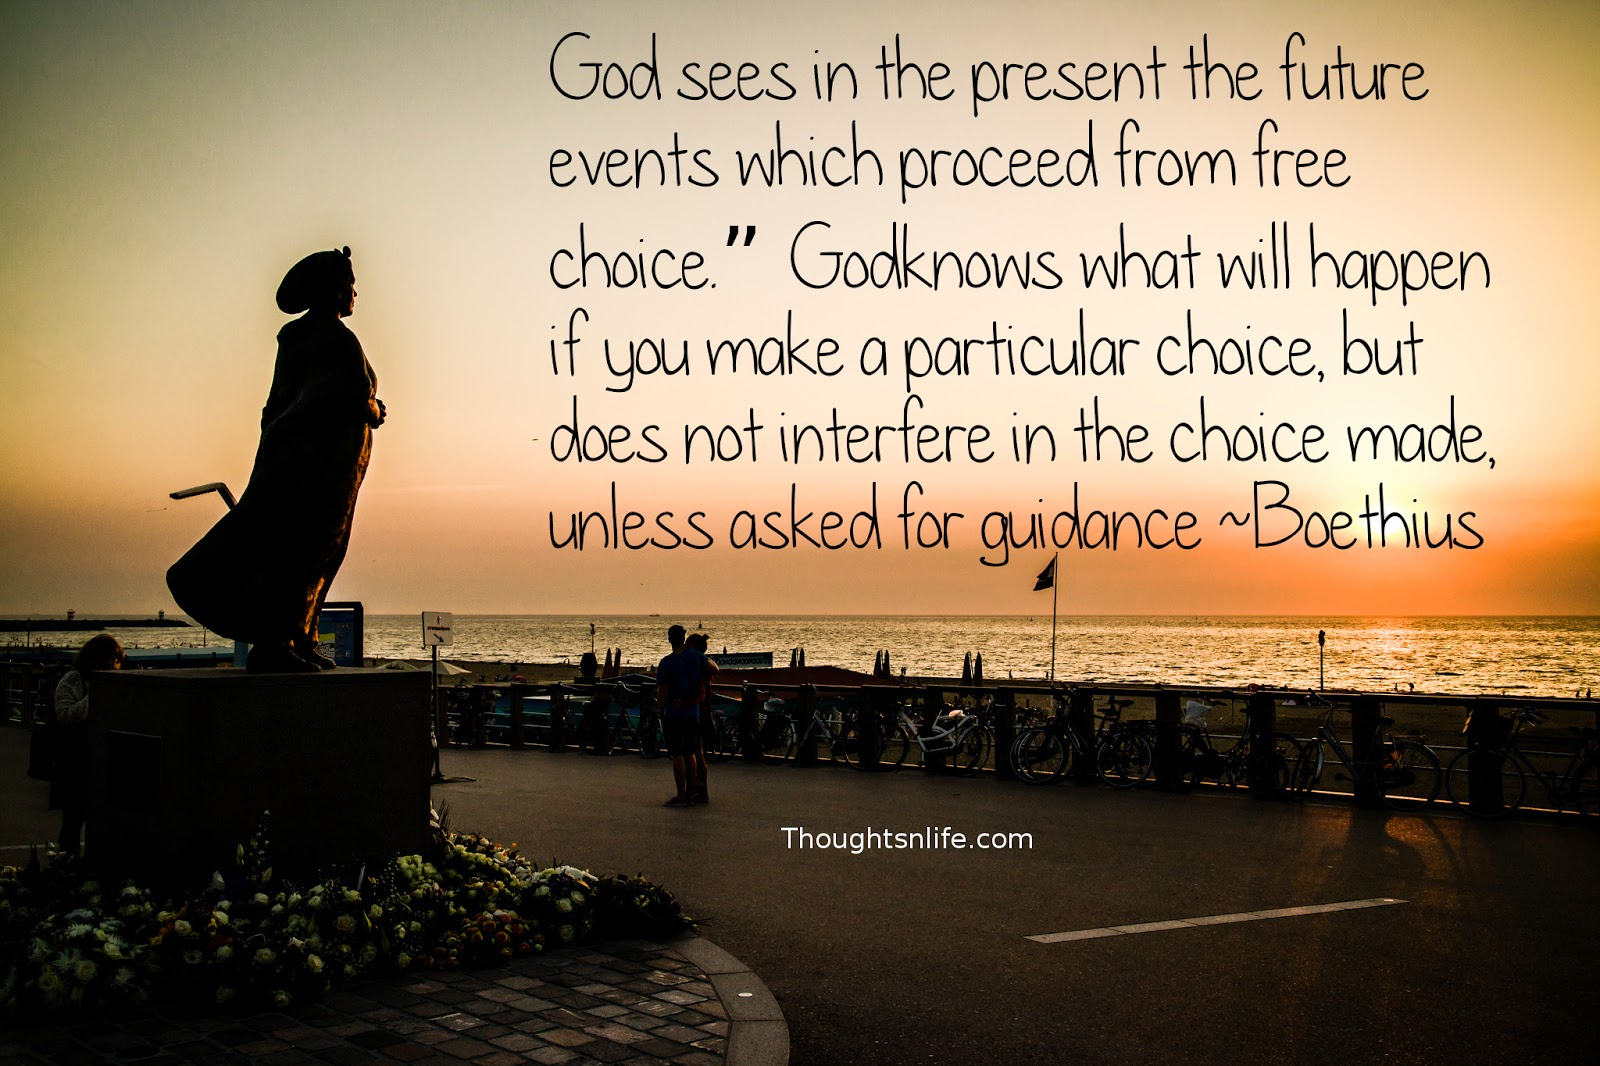 God sees in the present the future events